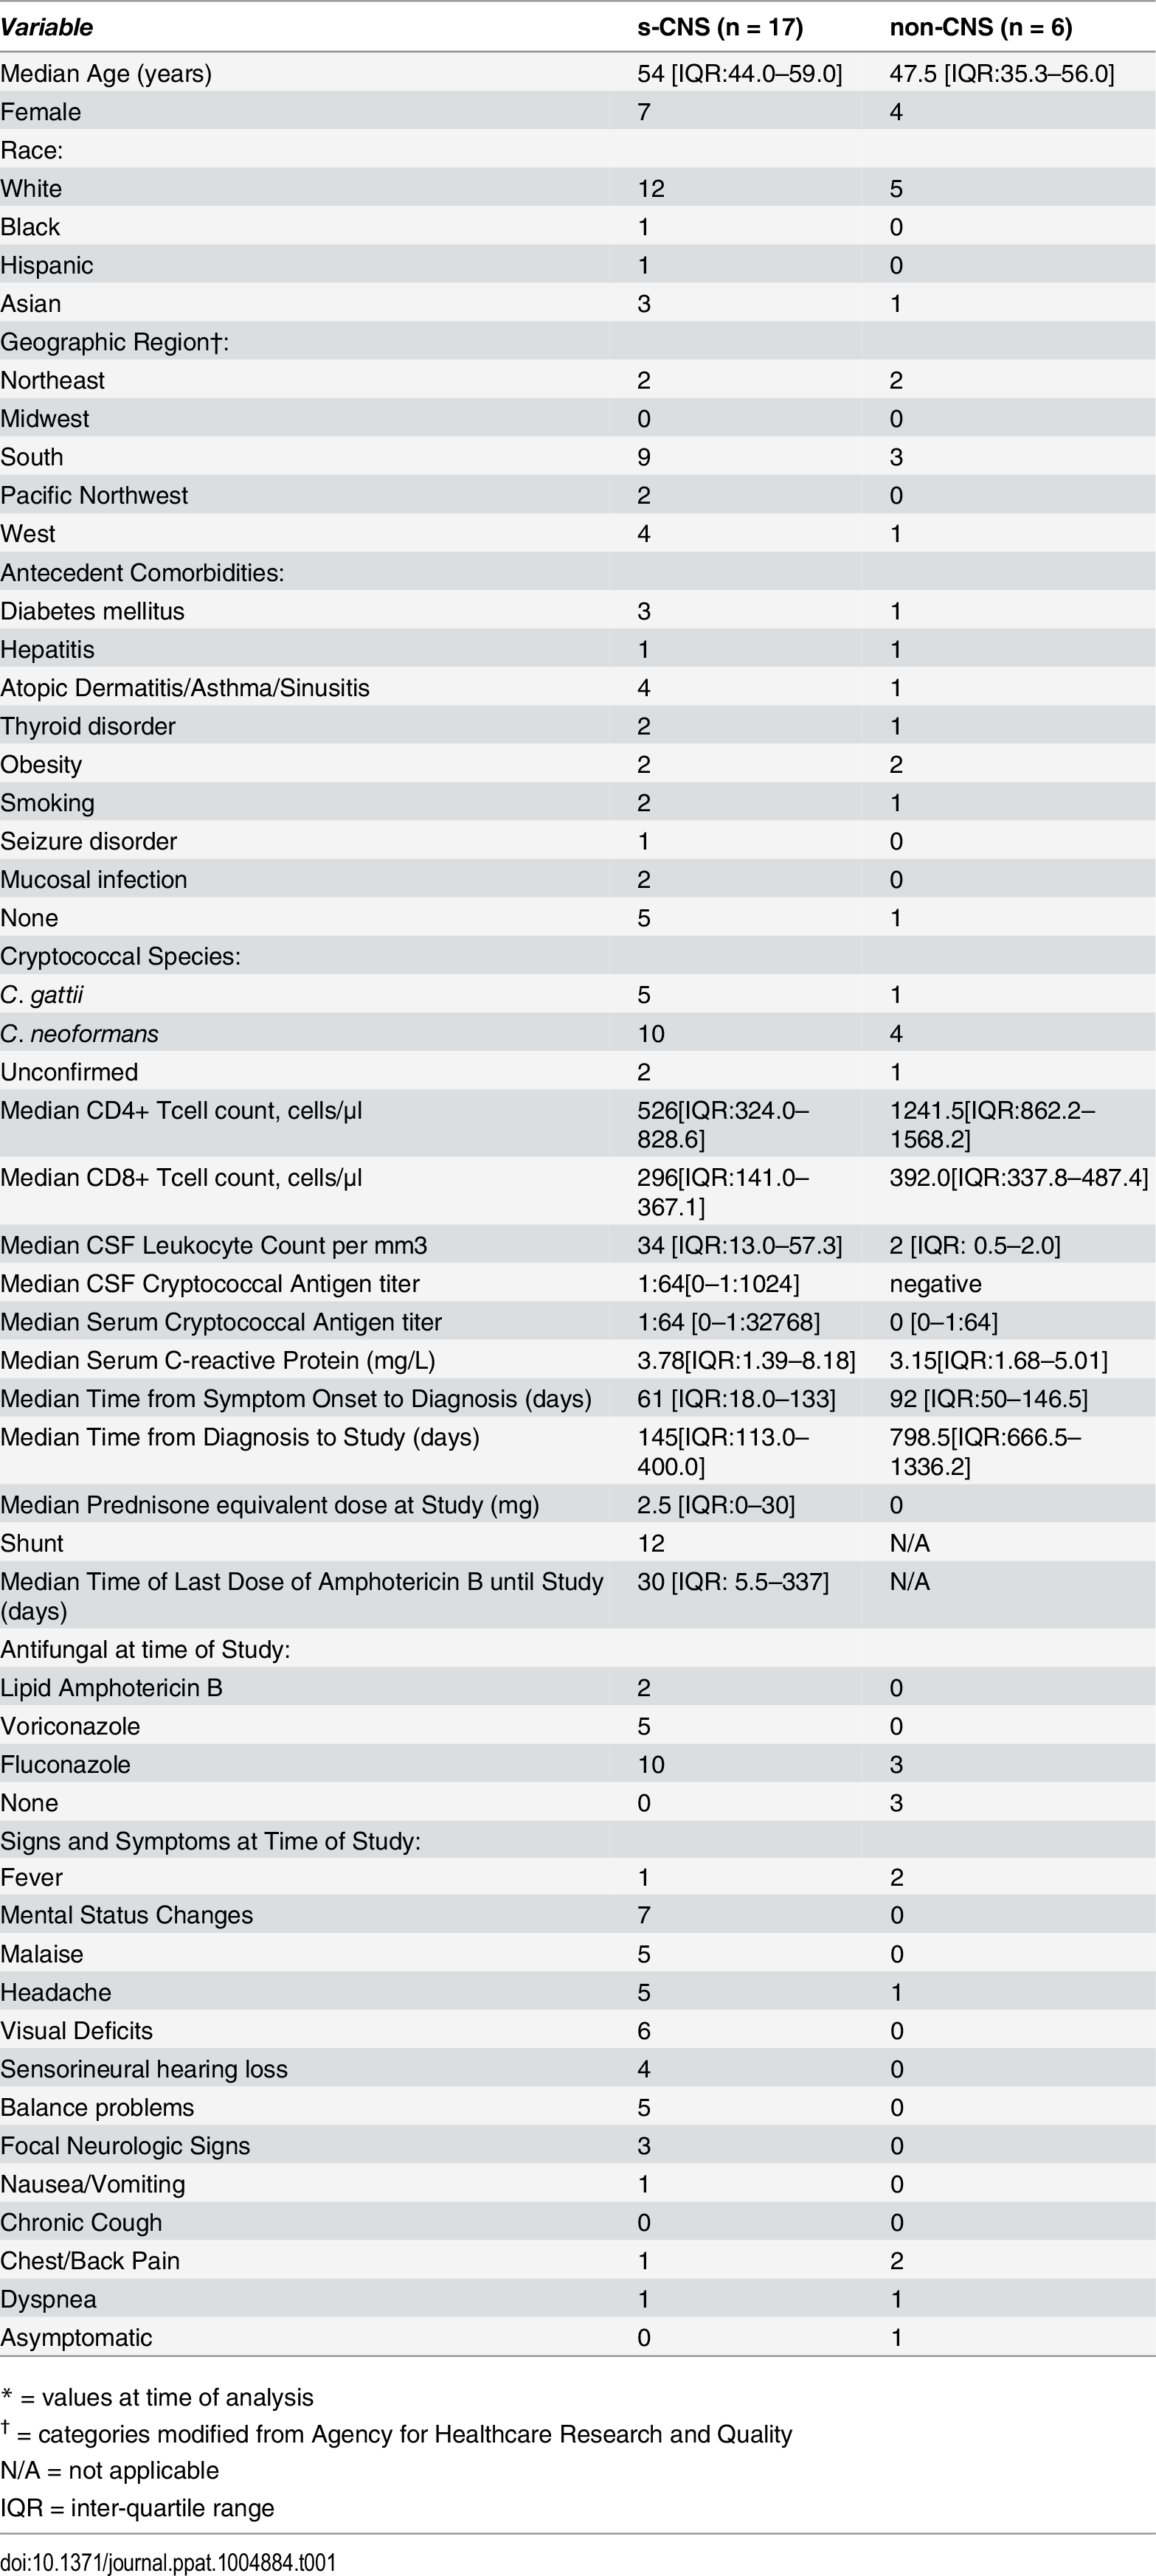 Patient characteristics of 17 severe central nervous system cryptococcosis (s-CNS) cases and 6 non-CNS cases.<em class=&quot;ref&quot;>*</em>